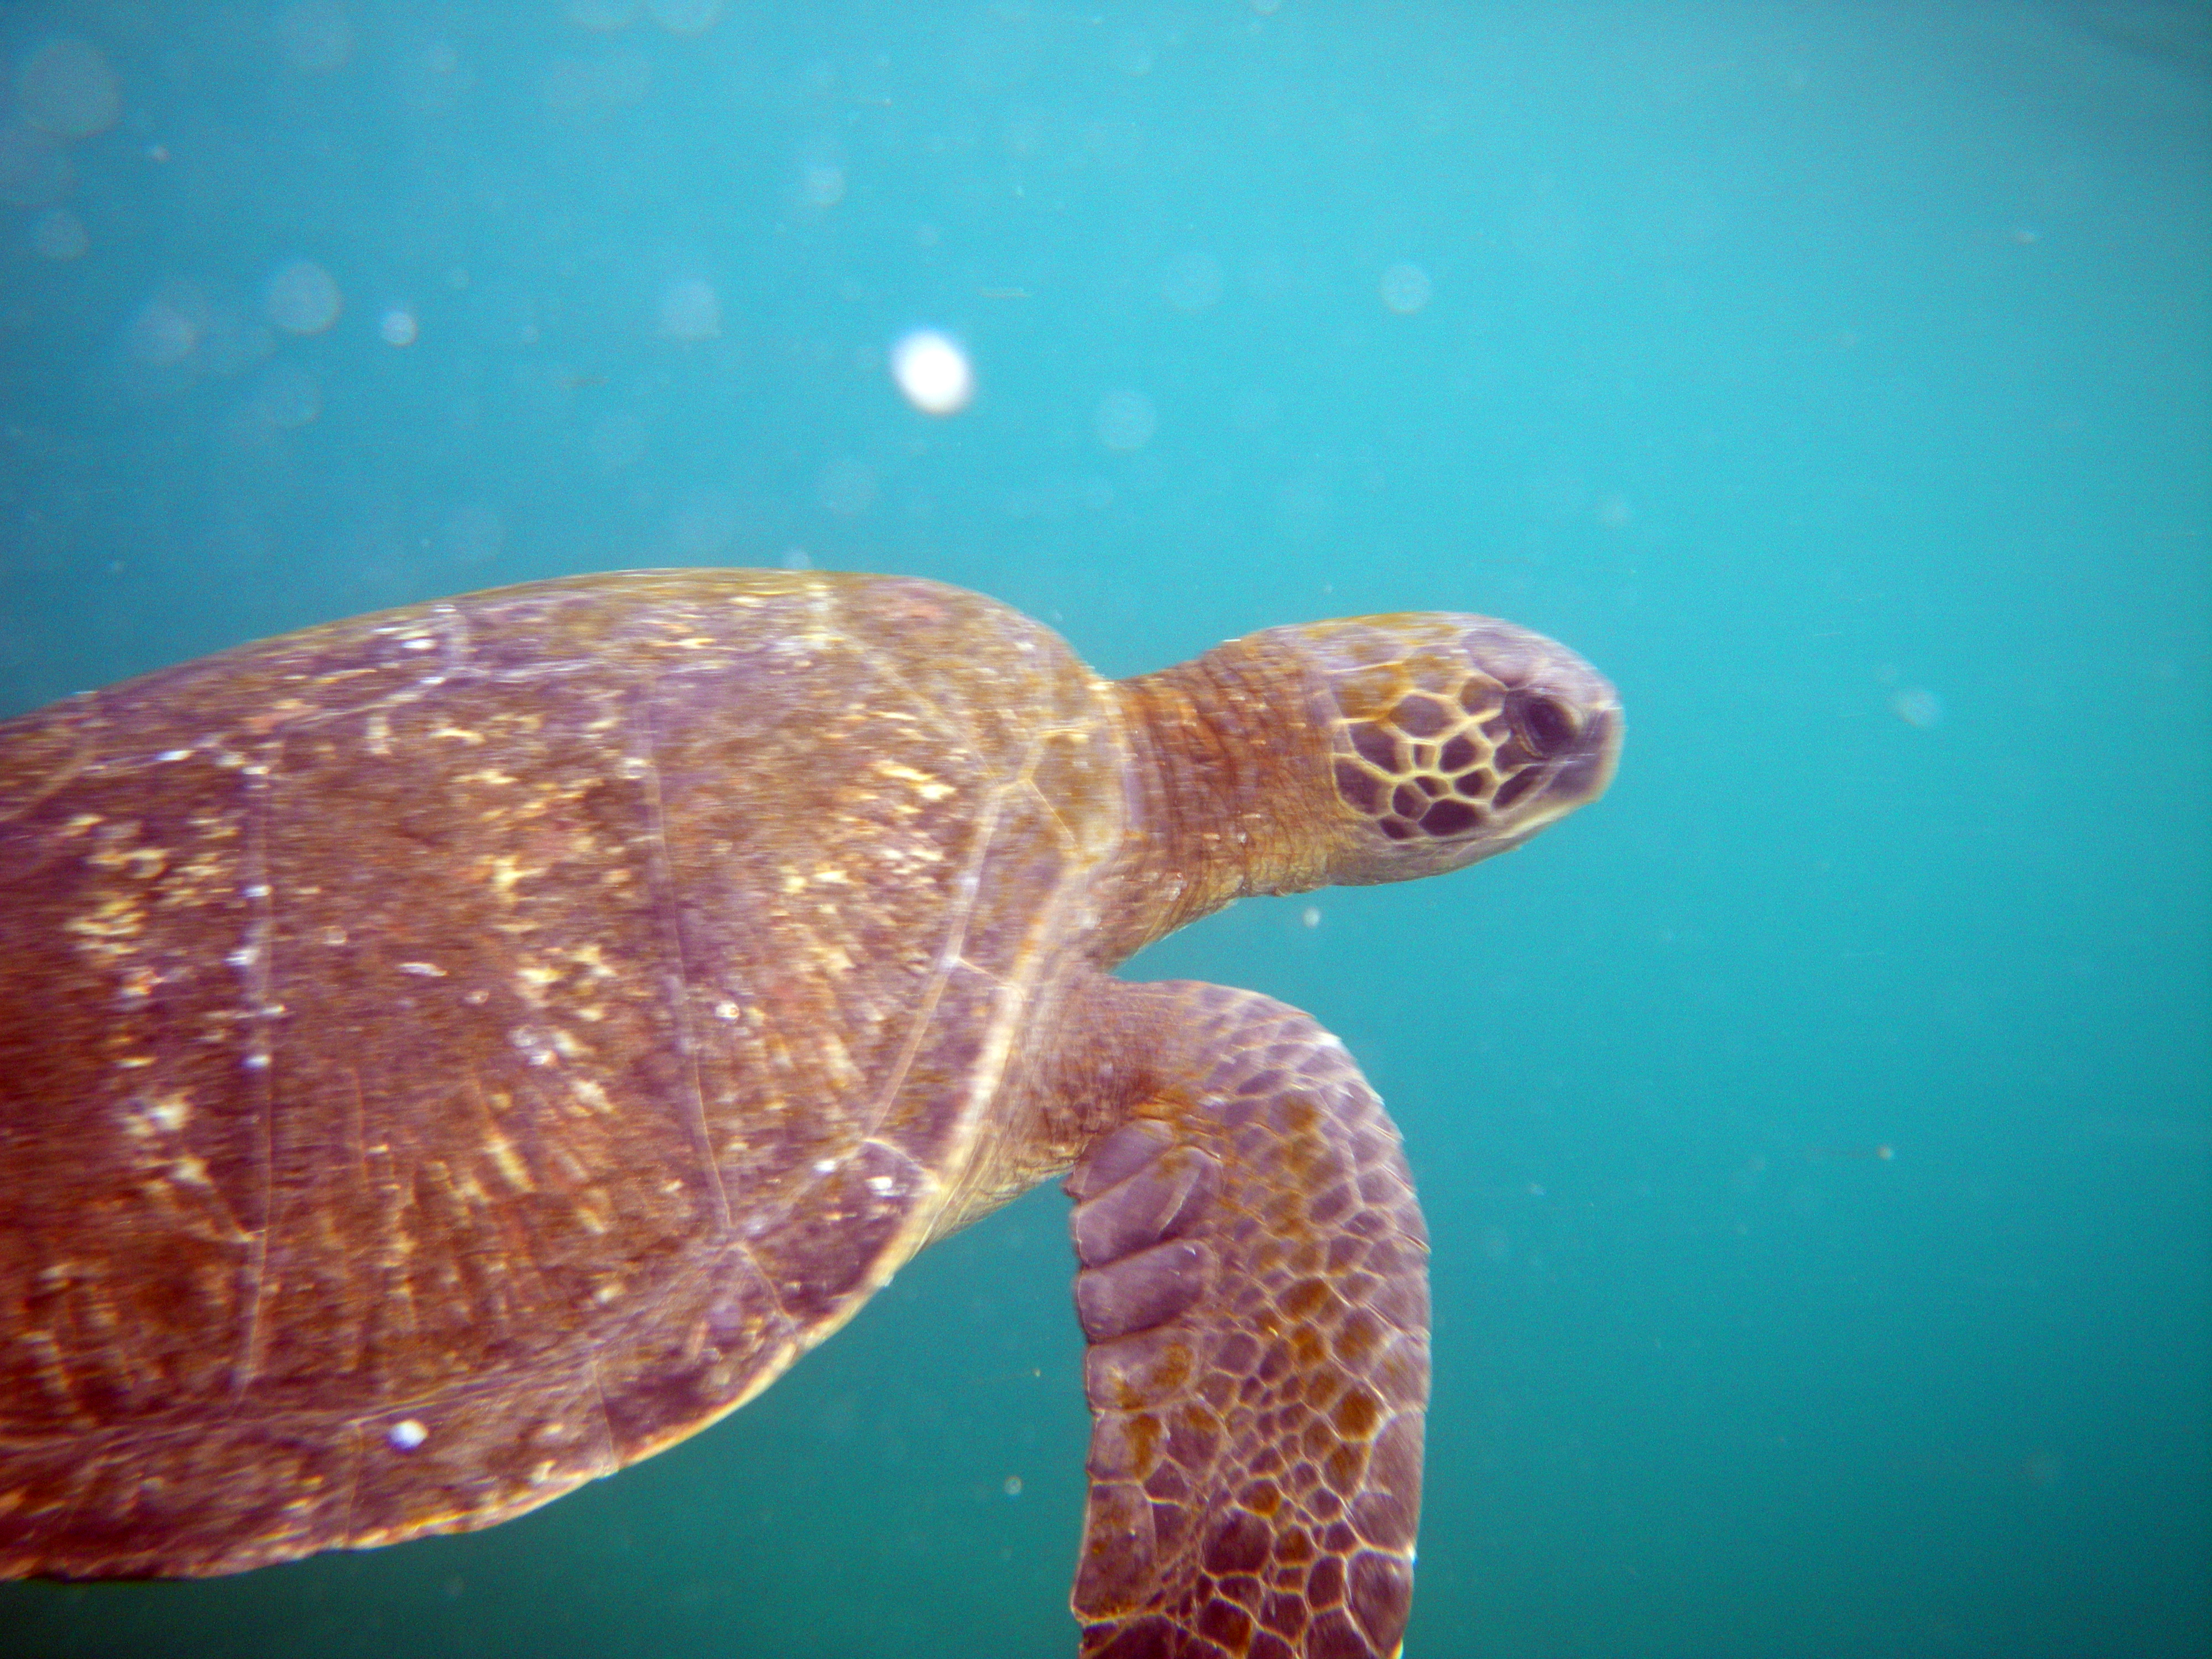 wp-content/uploads/itineraries/Galapagos/032310galapagos_taguscove_underwater_seaturtle (12).JPG